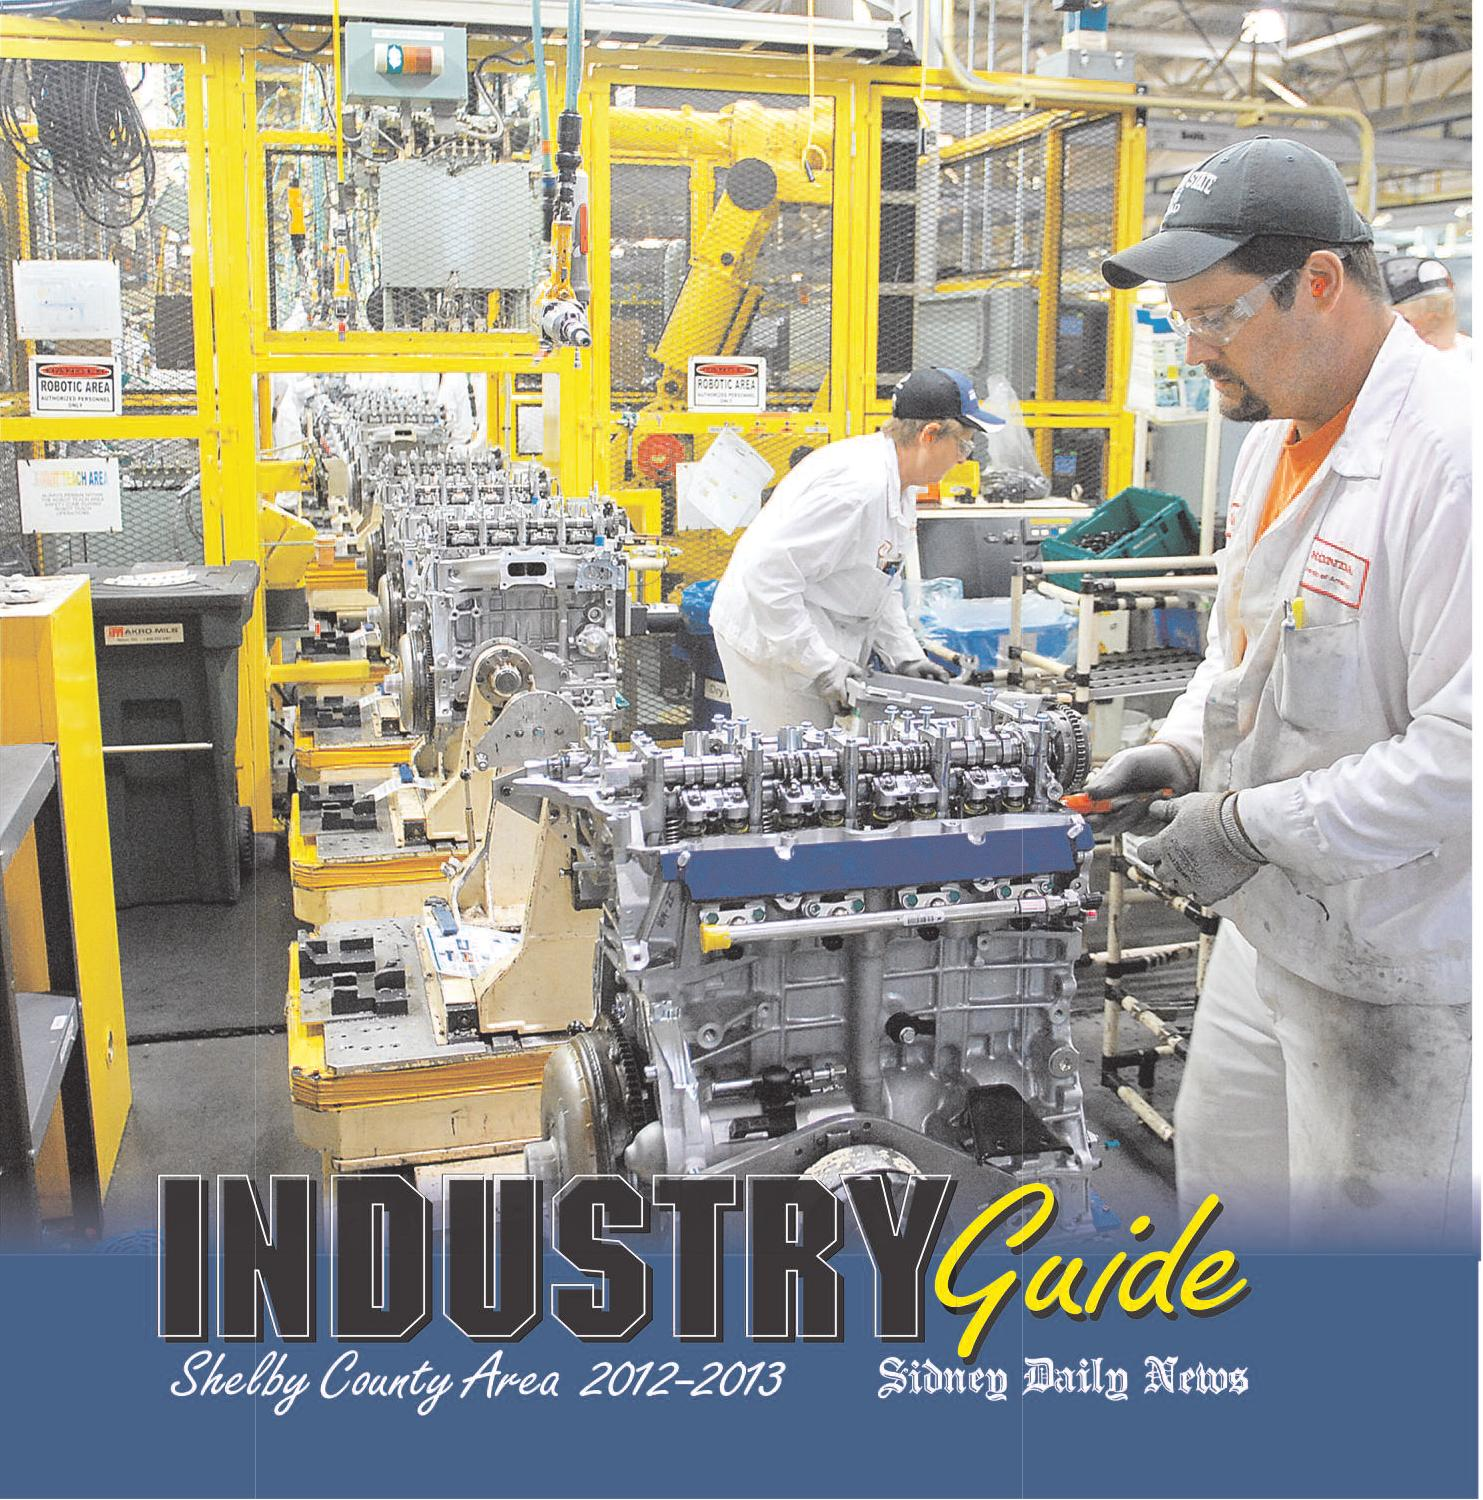 Shelby county industry guide 2012 by i 75 newspaper group issuu publicscrutiny Gallery